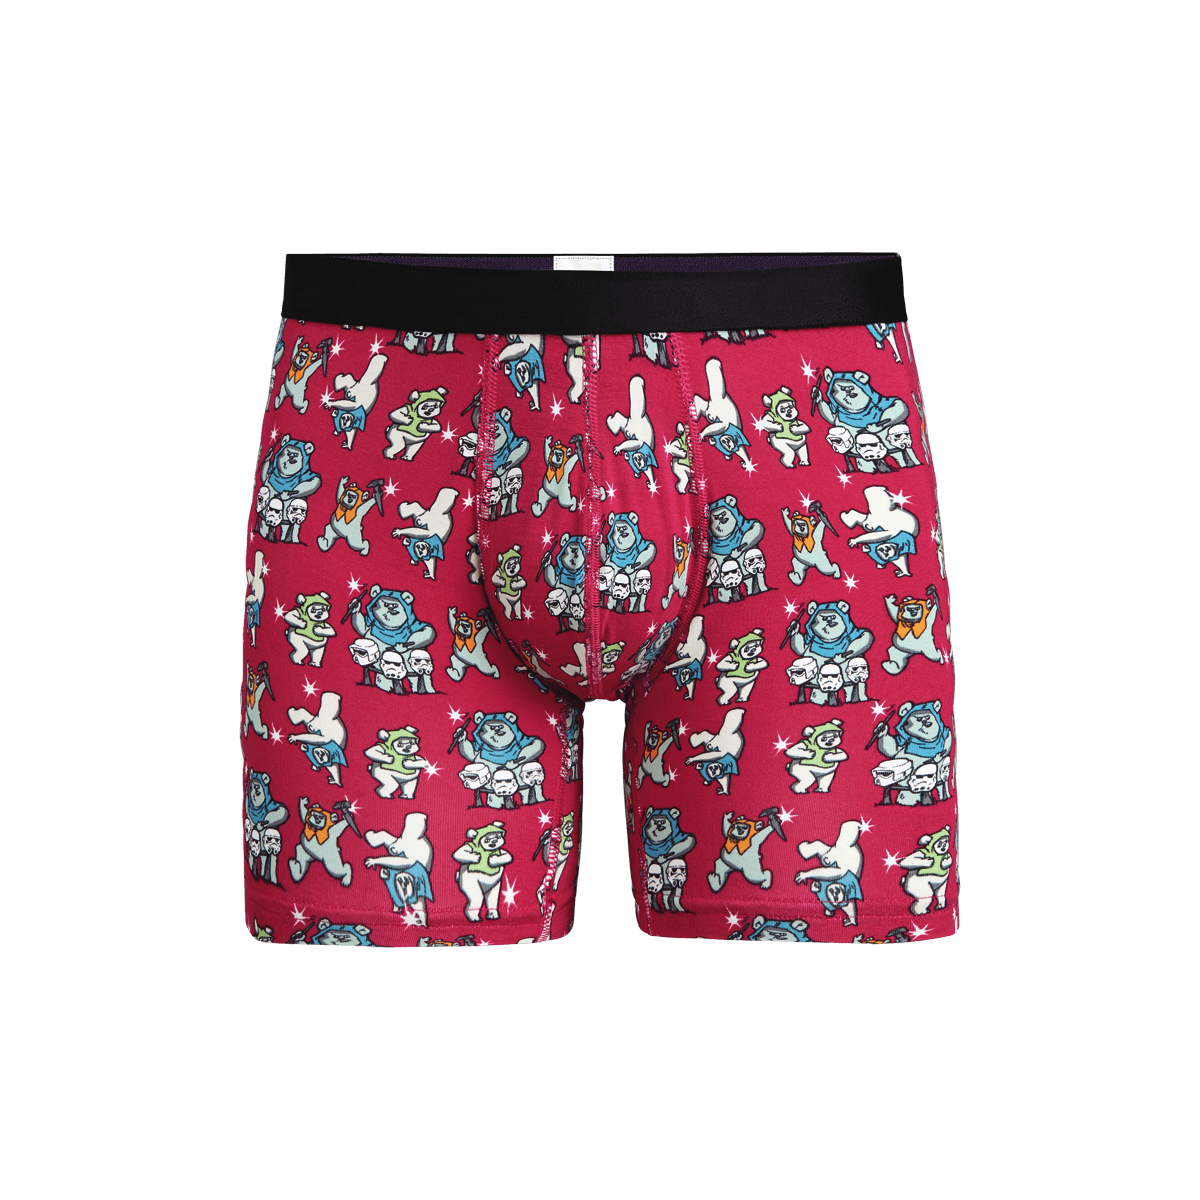 These boxer briefs are what started it all. These are the perfect combo of soft and free yet supportive and strong. The generous pouch will form to any figure, allowing for carefree comfort all day.